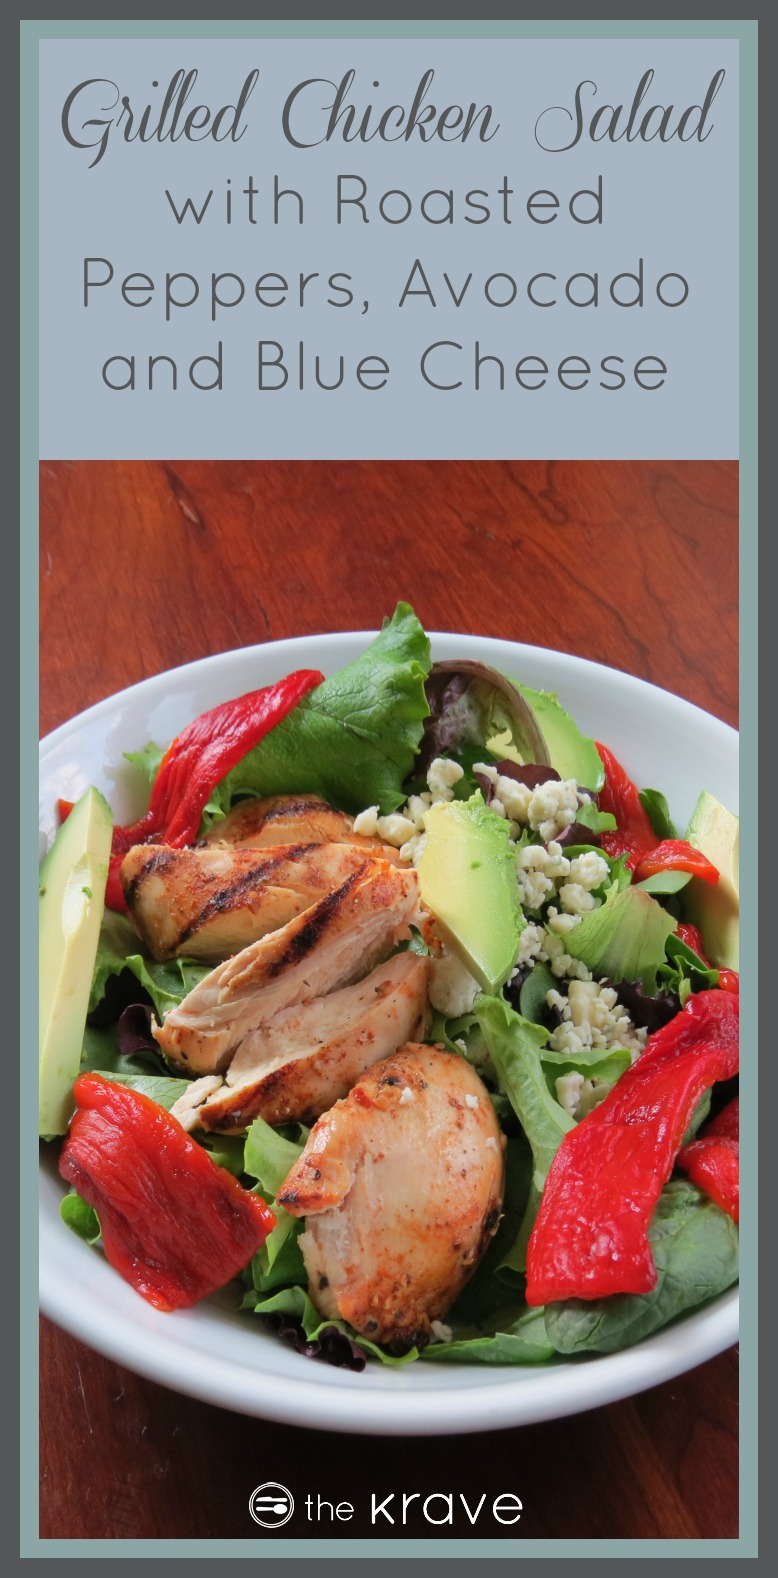 Grilled-Chicken-Salad-with-Roasted-peppers-thekrave